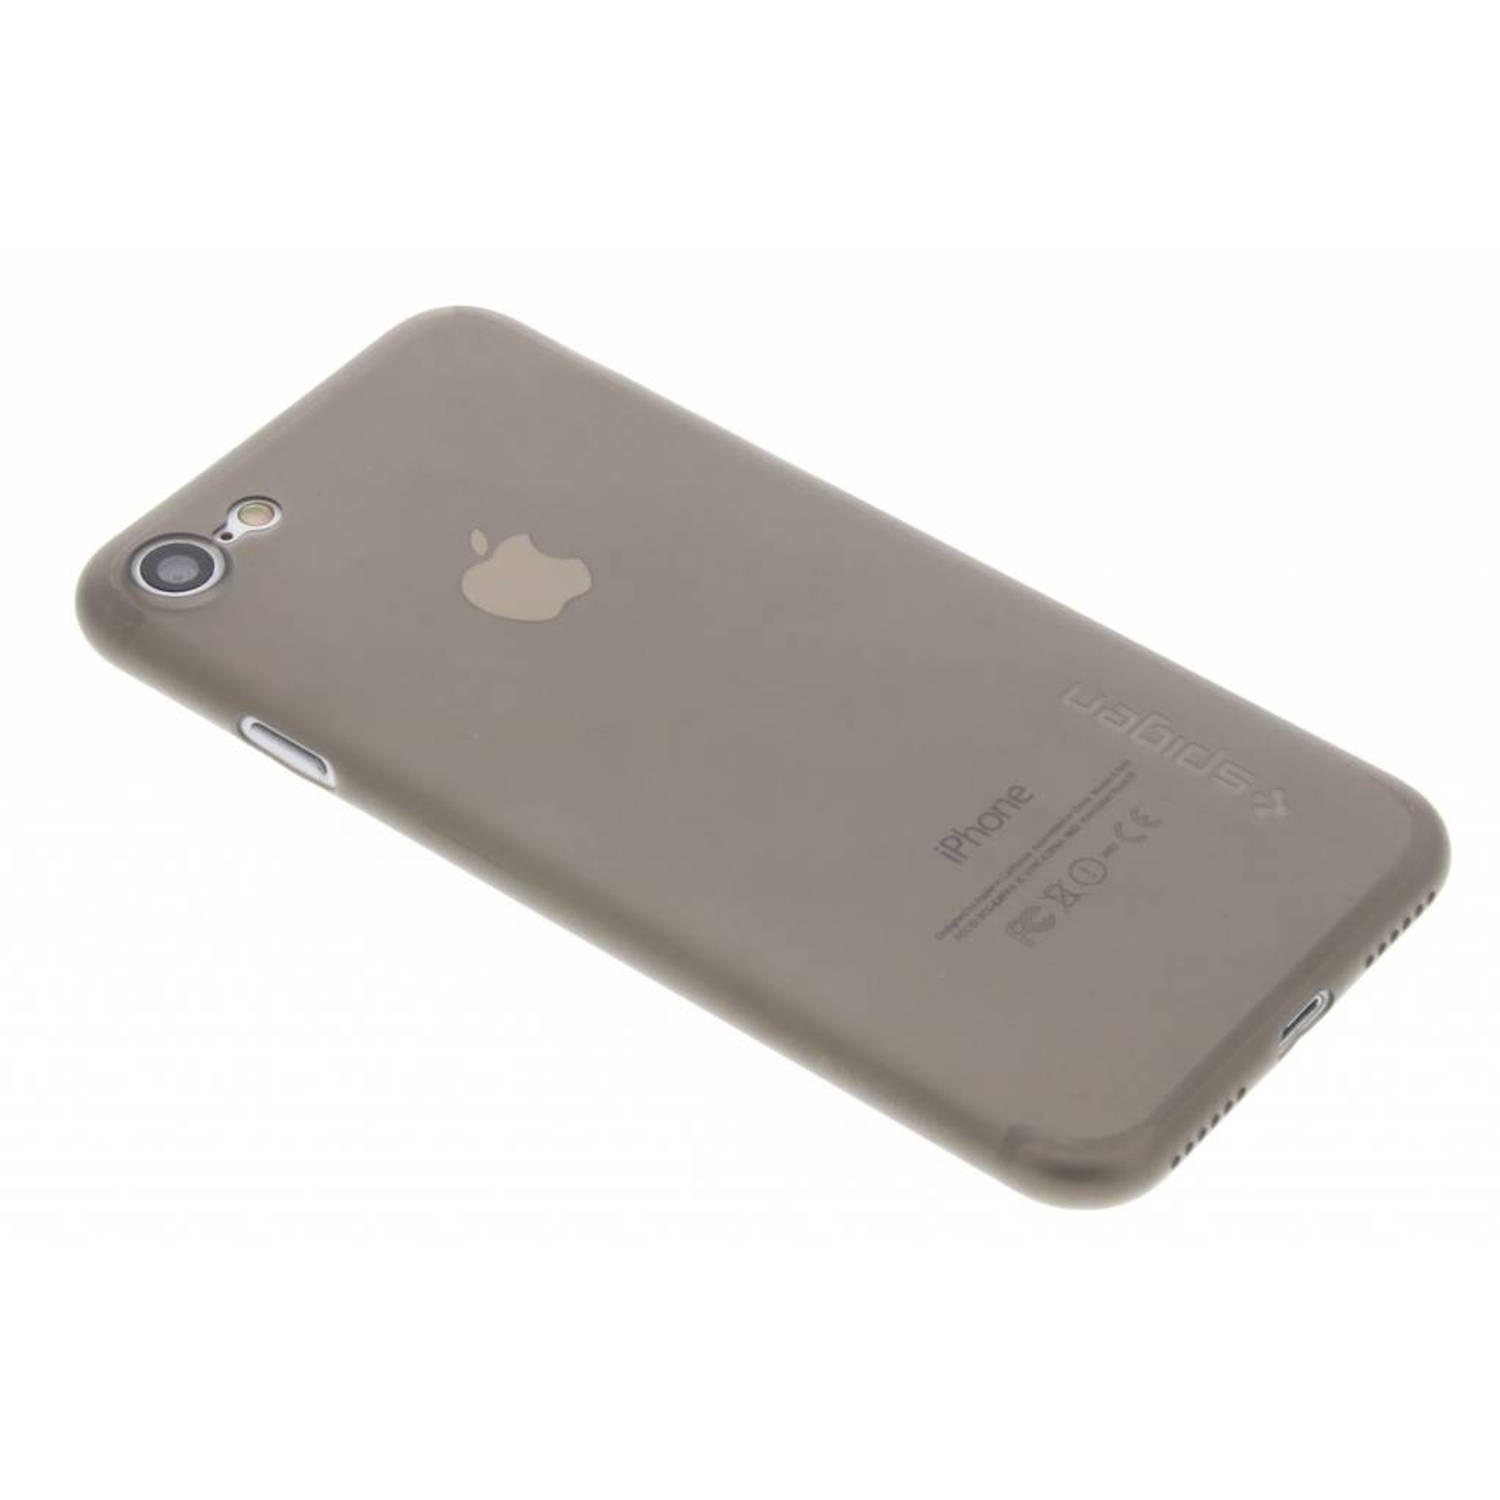 Zwart transparante Airskin Backcover voor de iPhone 8 / 7